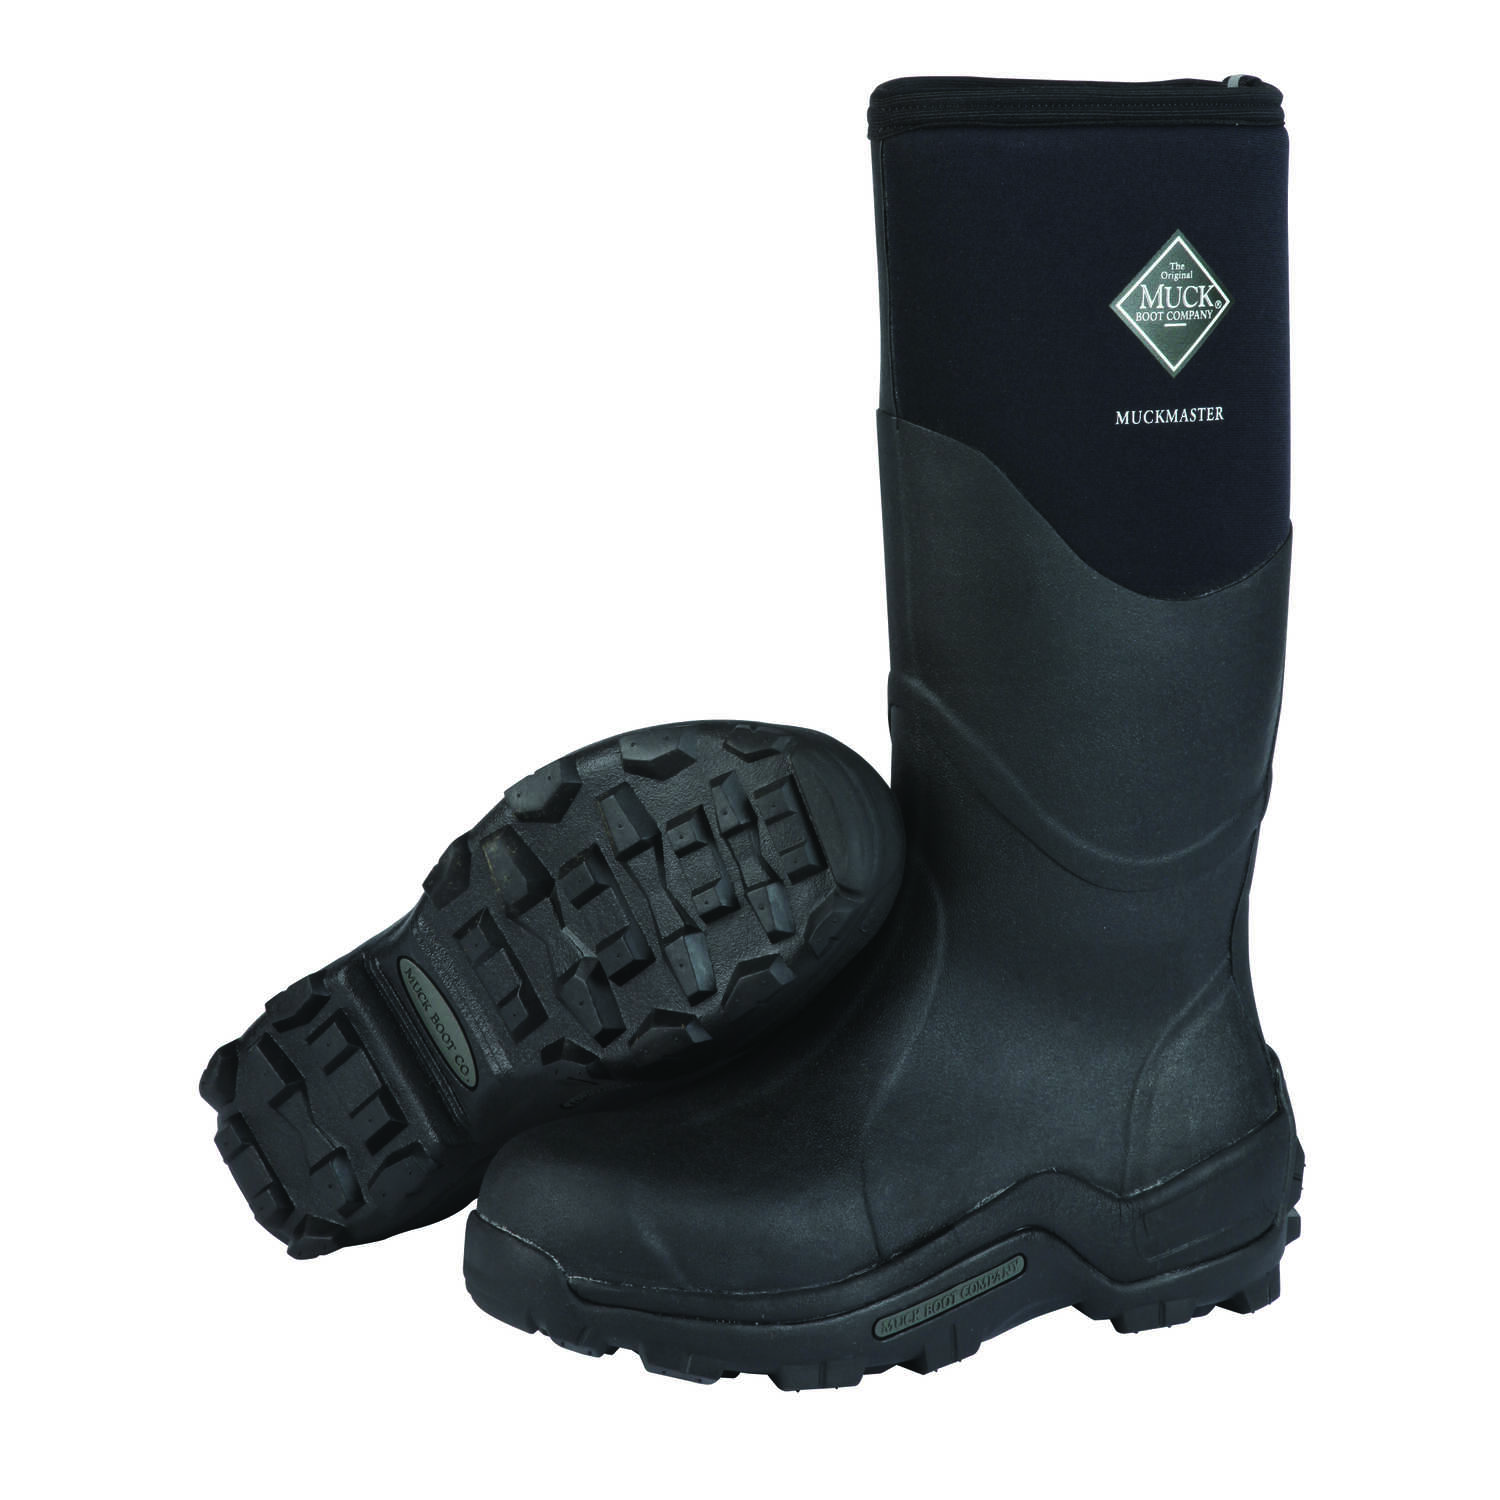 The Original Muck Boot Company  Muckmaster  Men's  Boots  9 US  Black